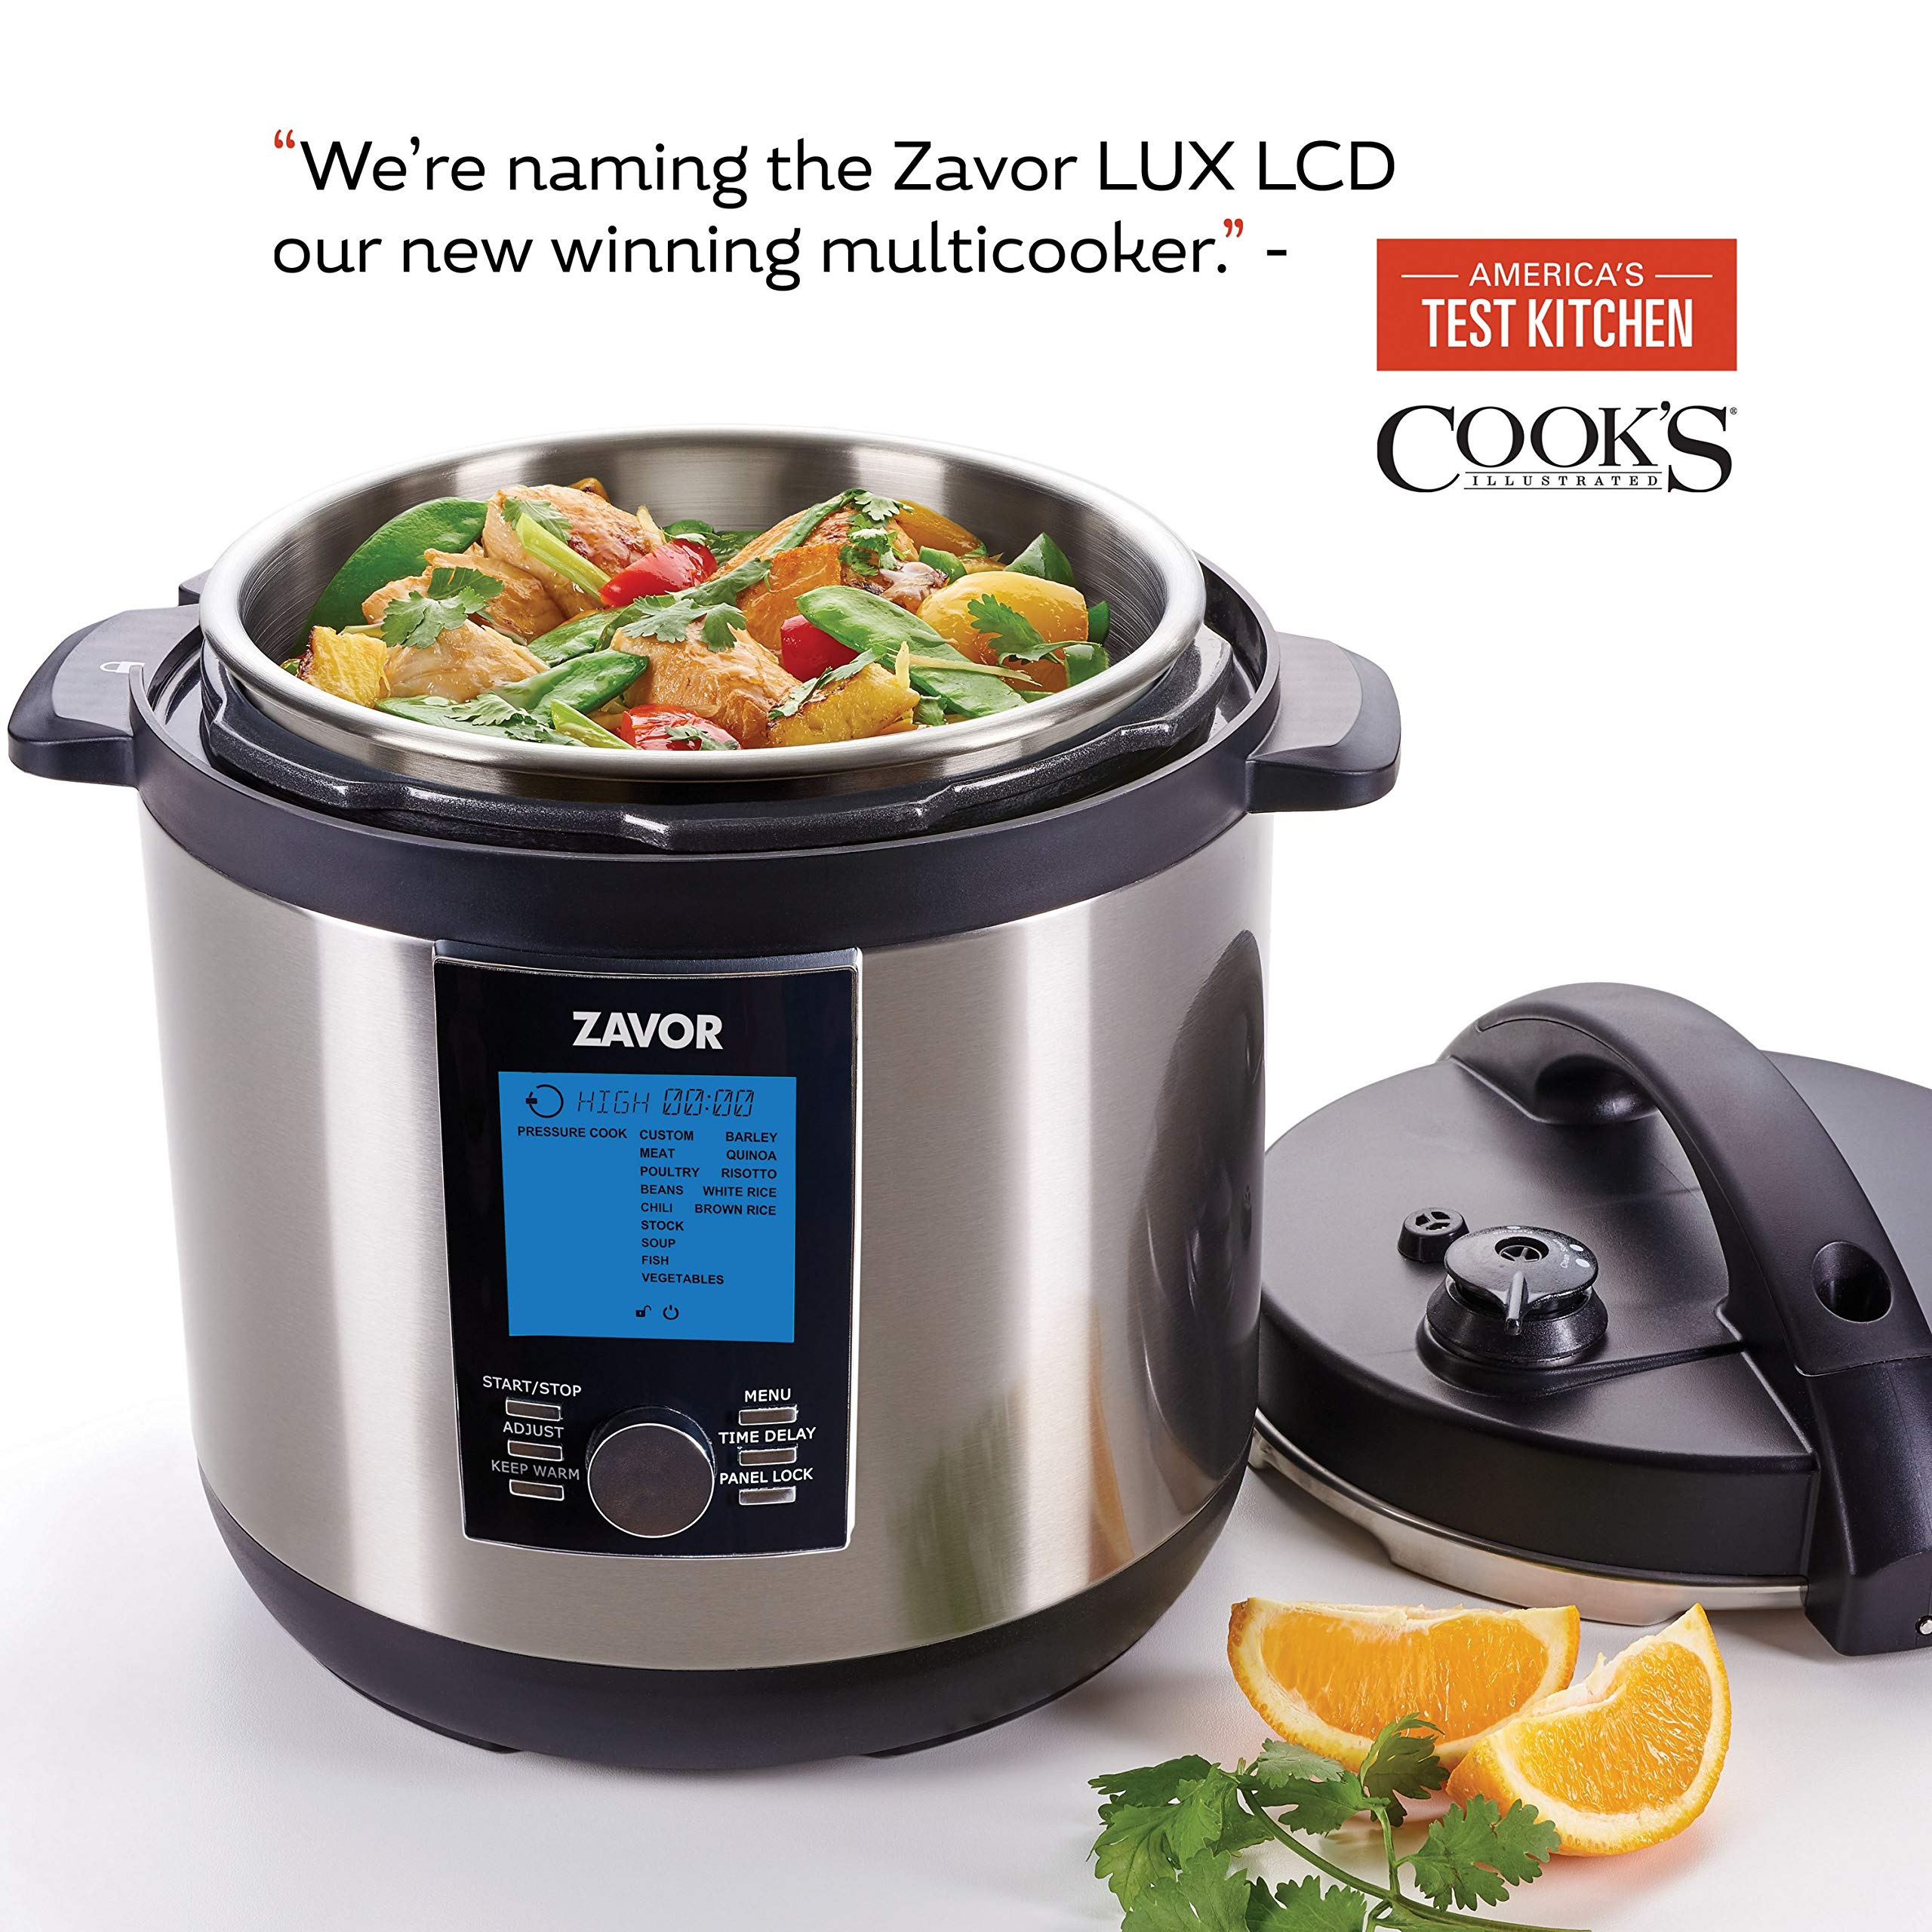 Zavor LUX LCD 8 Quart Programmable Electric Multi-Cooker: Pressure Cooker, Slow Cooker, Rice Cooker, Yogurt Maker, Steamer and more - Stainless Steel (ZSELL03) by ZAVOR (Image #2)